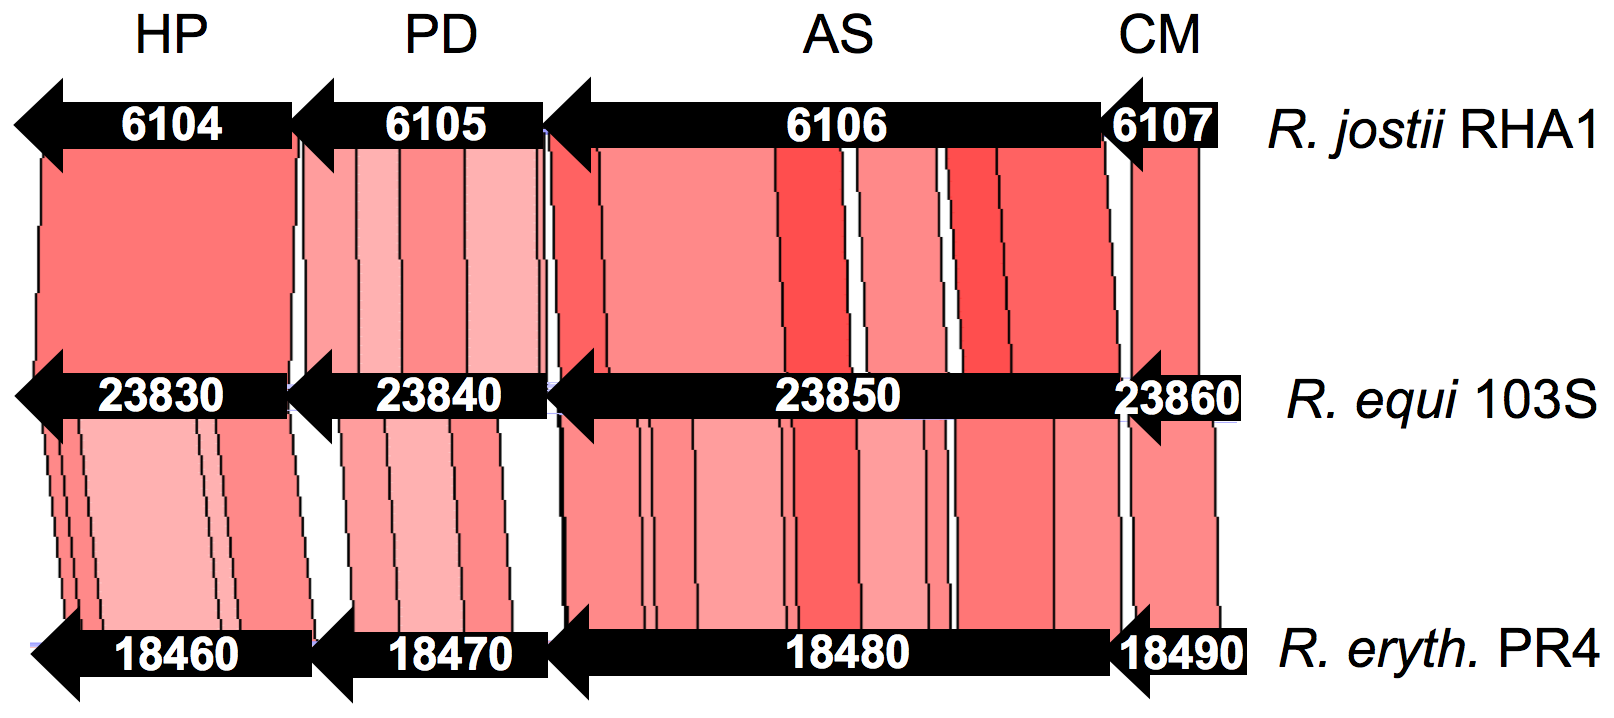 Structure of the chromosomal locus of the putative chorismate mutase (CM) and anthranilate synthase (AS) genes REQ23860 and REQ23850.